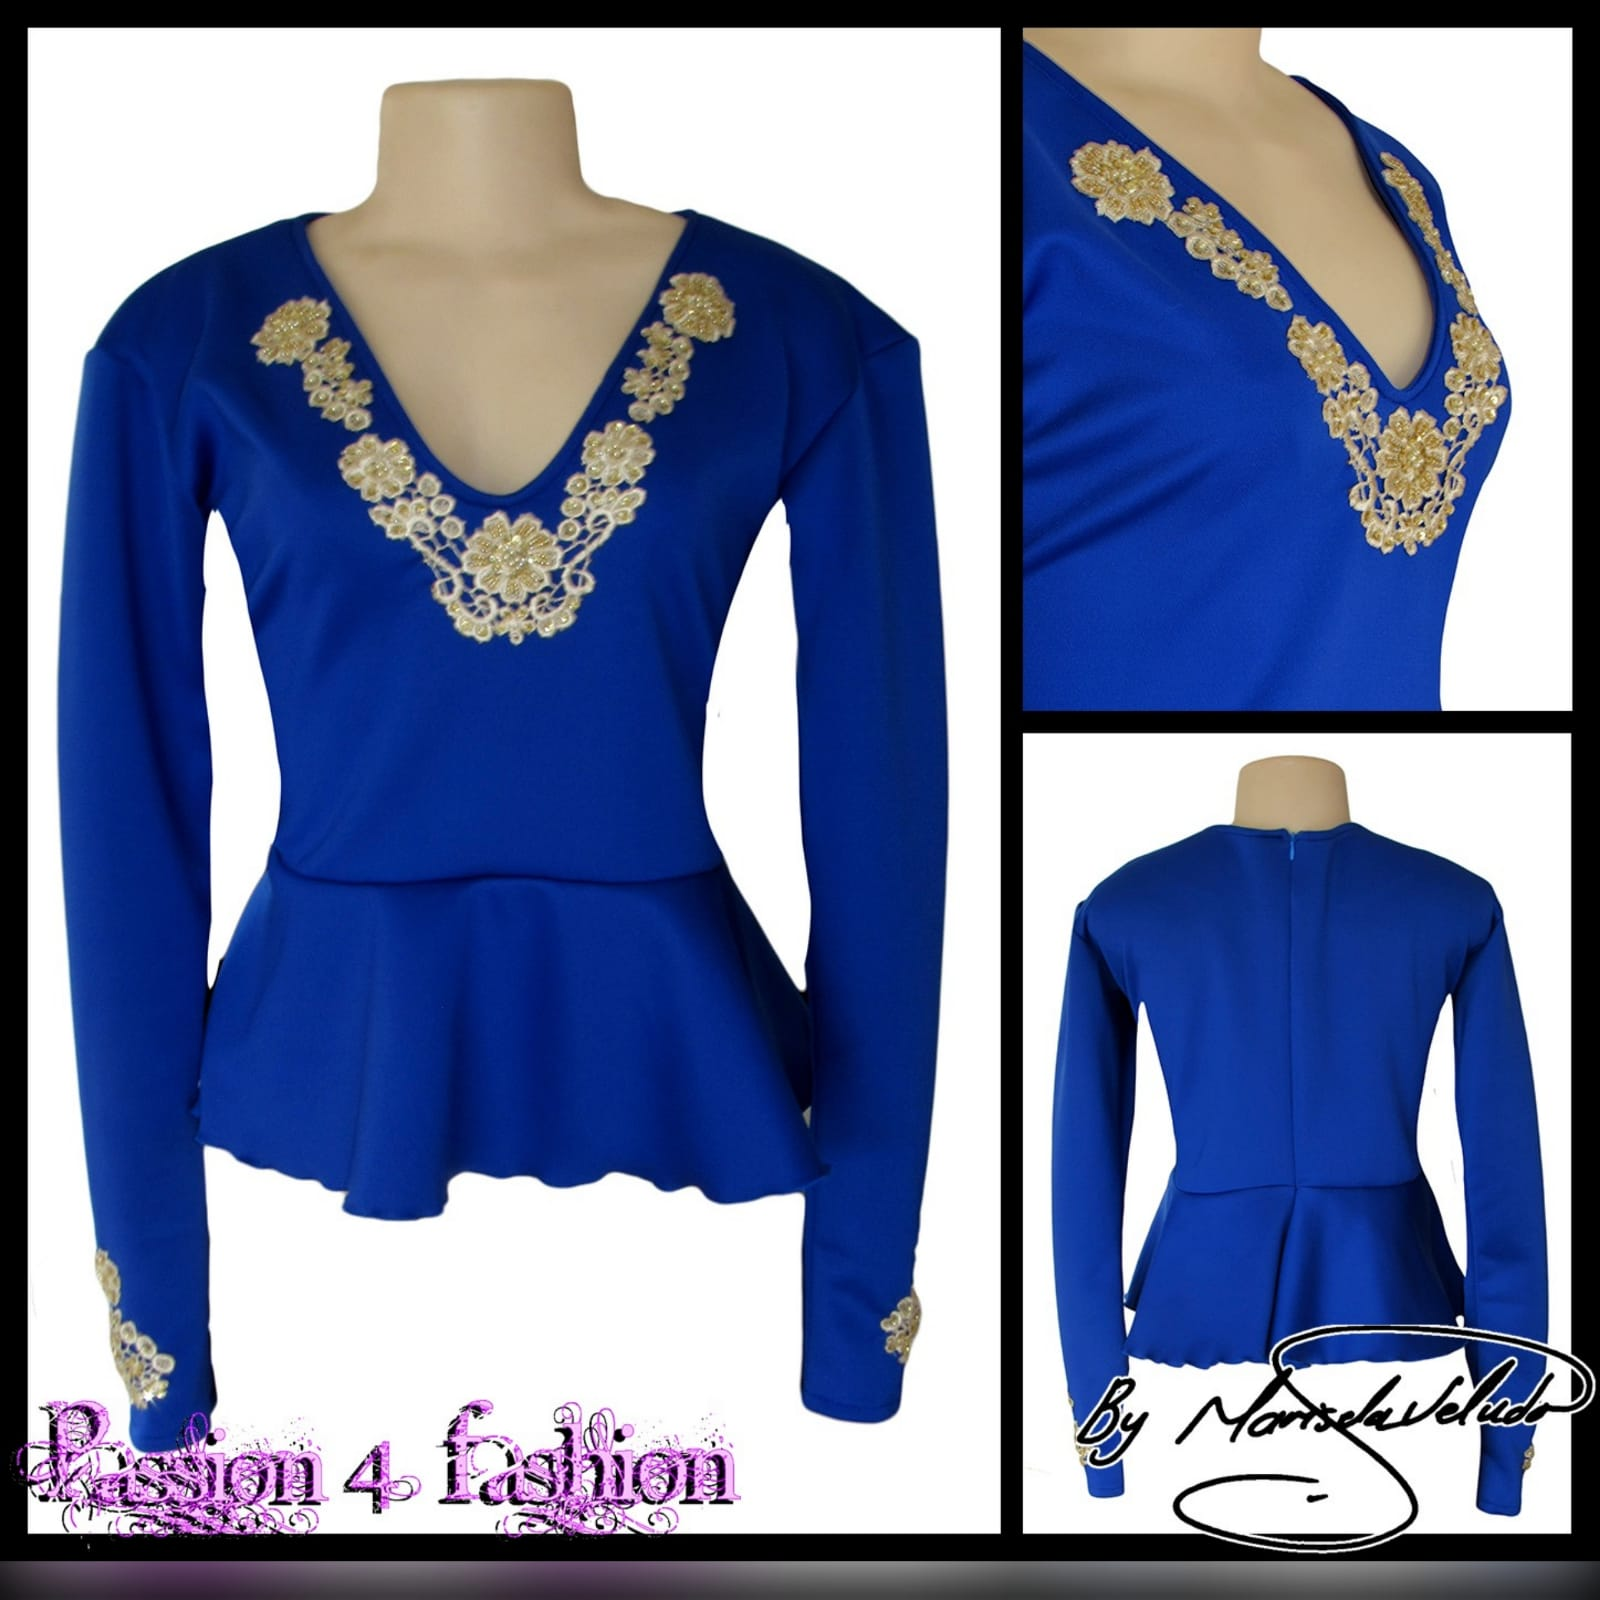 Royal blue & gold peplum smart casual top 2 royal blue & gold peplum smart casual top, long sleeves, v neckline & cuffs detailed with gold beaded lace